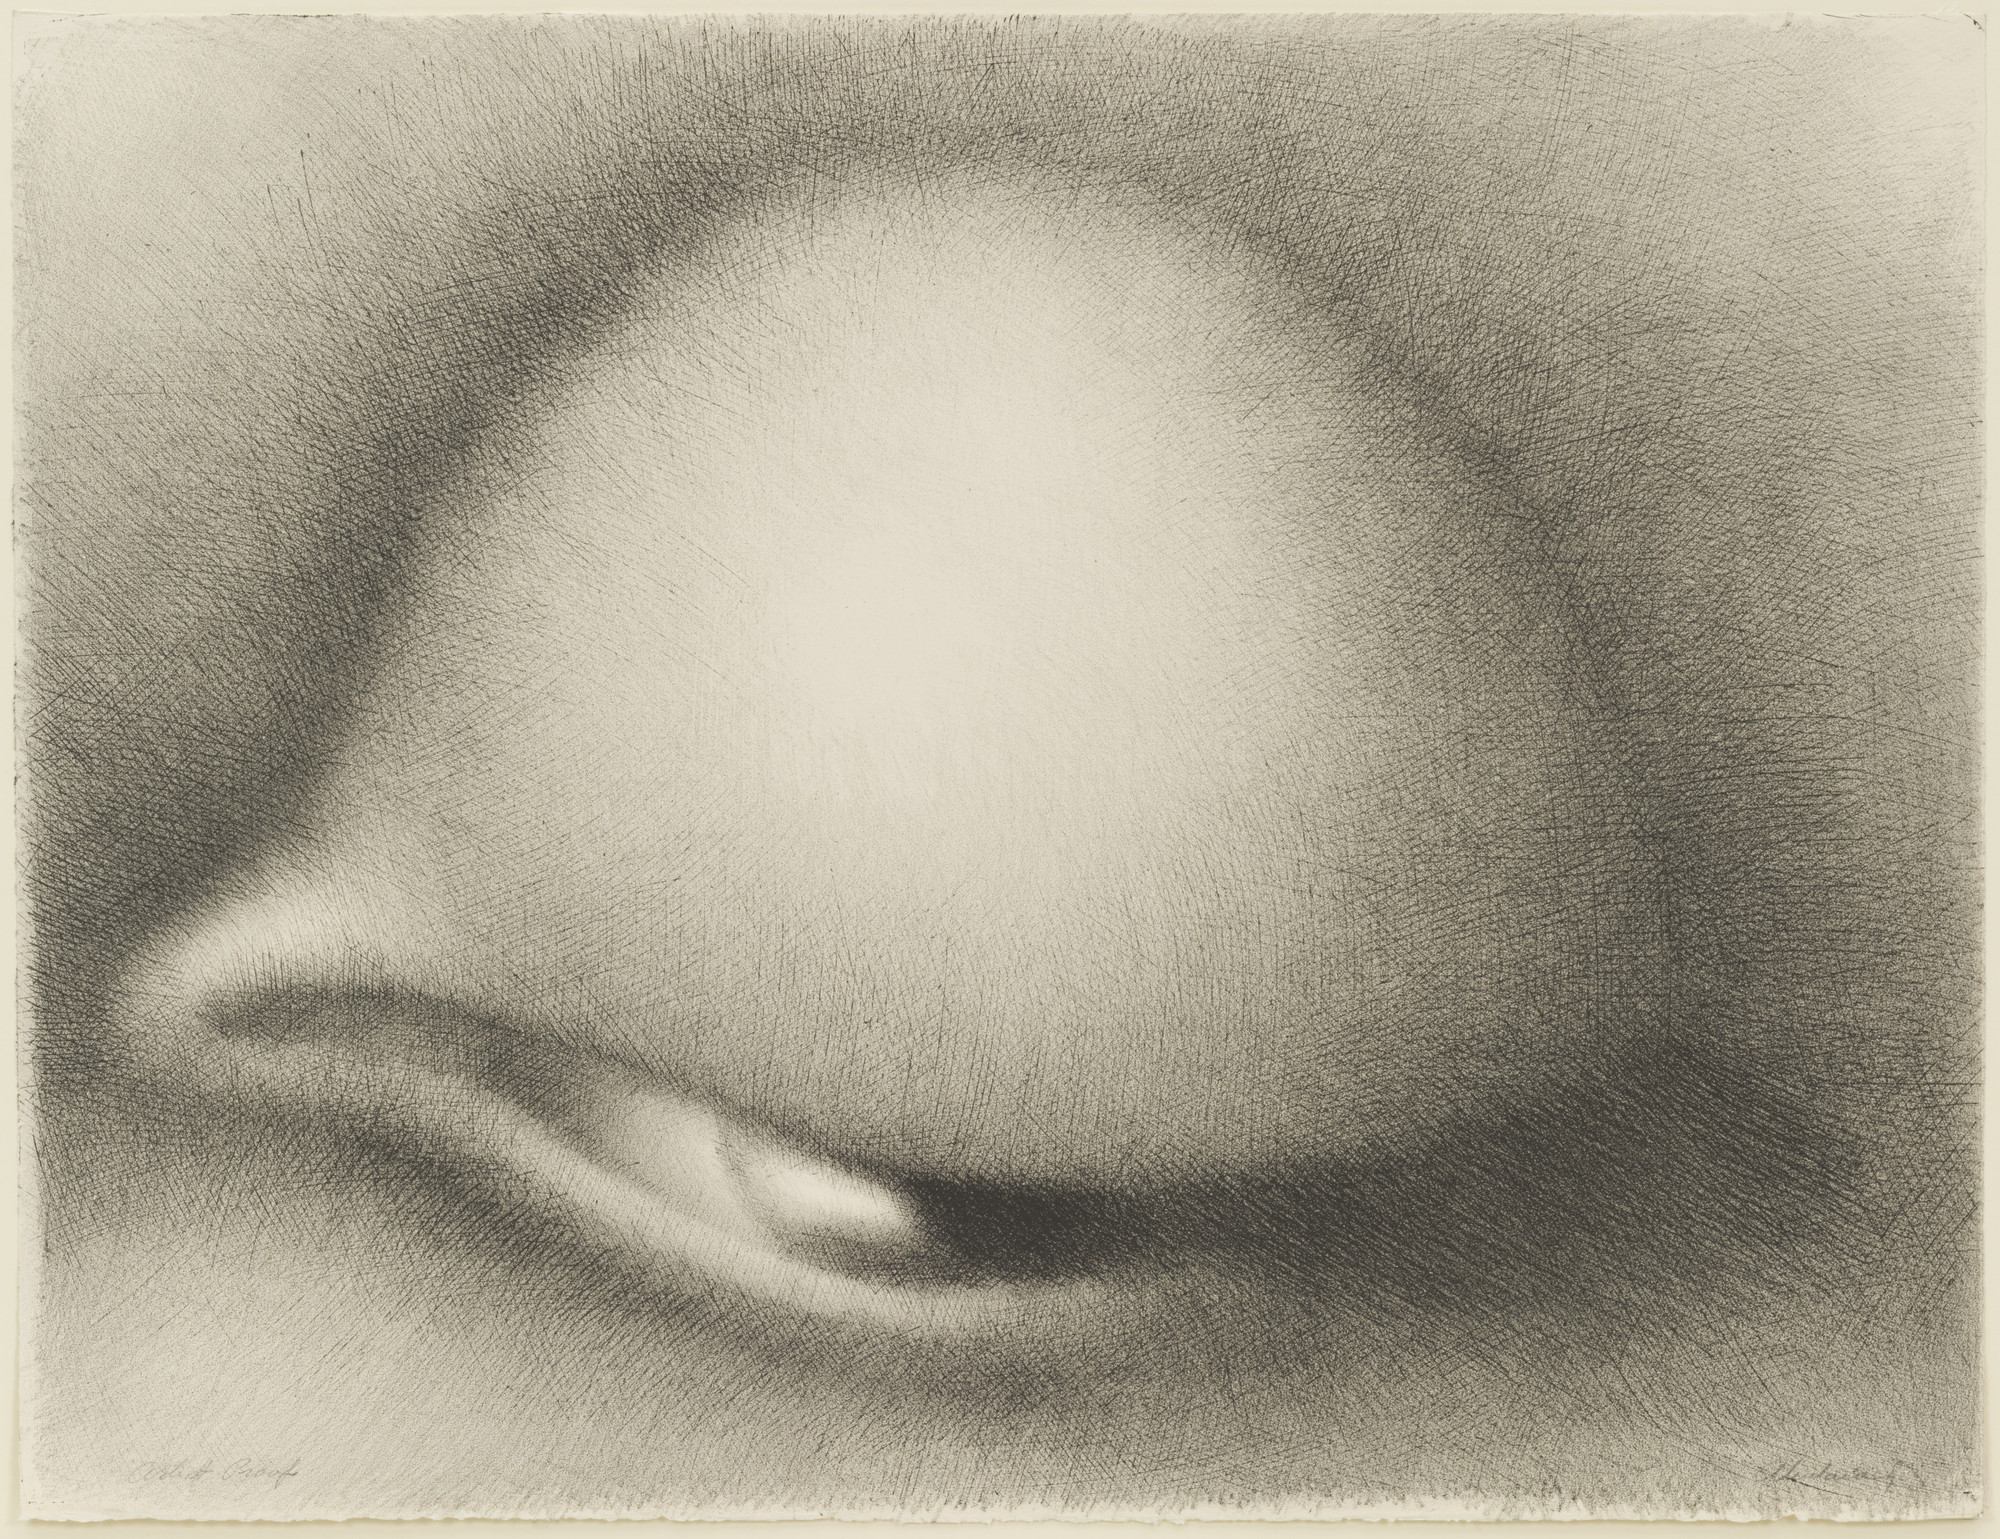 Rodolfo Abularach. Enigmatic Eye I (Ojo Enigmatico I). 1969. Lithograph, composition 22 5/8 × 29 3/8″ (57.4 × 74.6 cm); sheet 22 5/8 × 29 3/8″ (57.4 × 74.6 cm). Publisher: the artist, New York. Printer: Atelier Mourlot, Ltd., New York. Edition: 100. Inter-American Fund. © 2016 Rodolfo Abularach